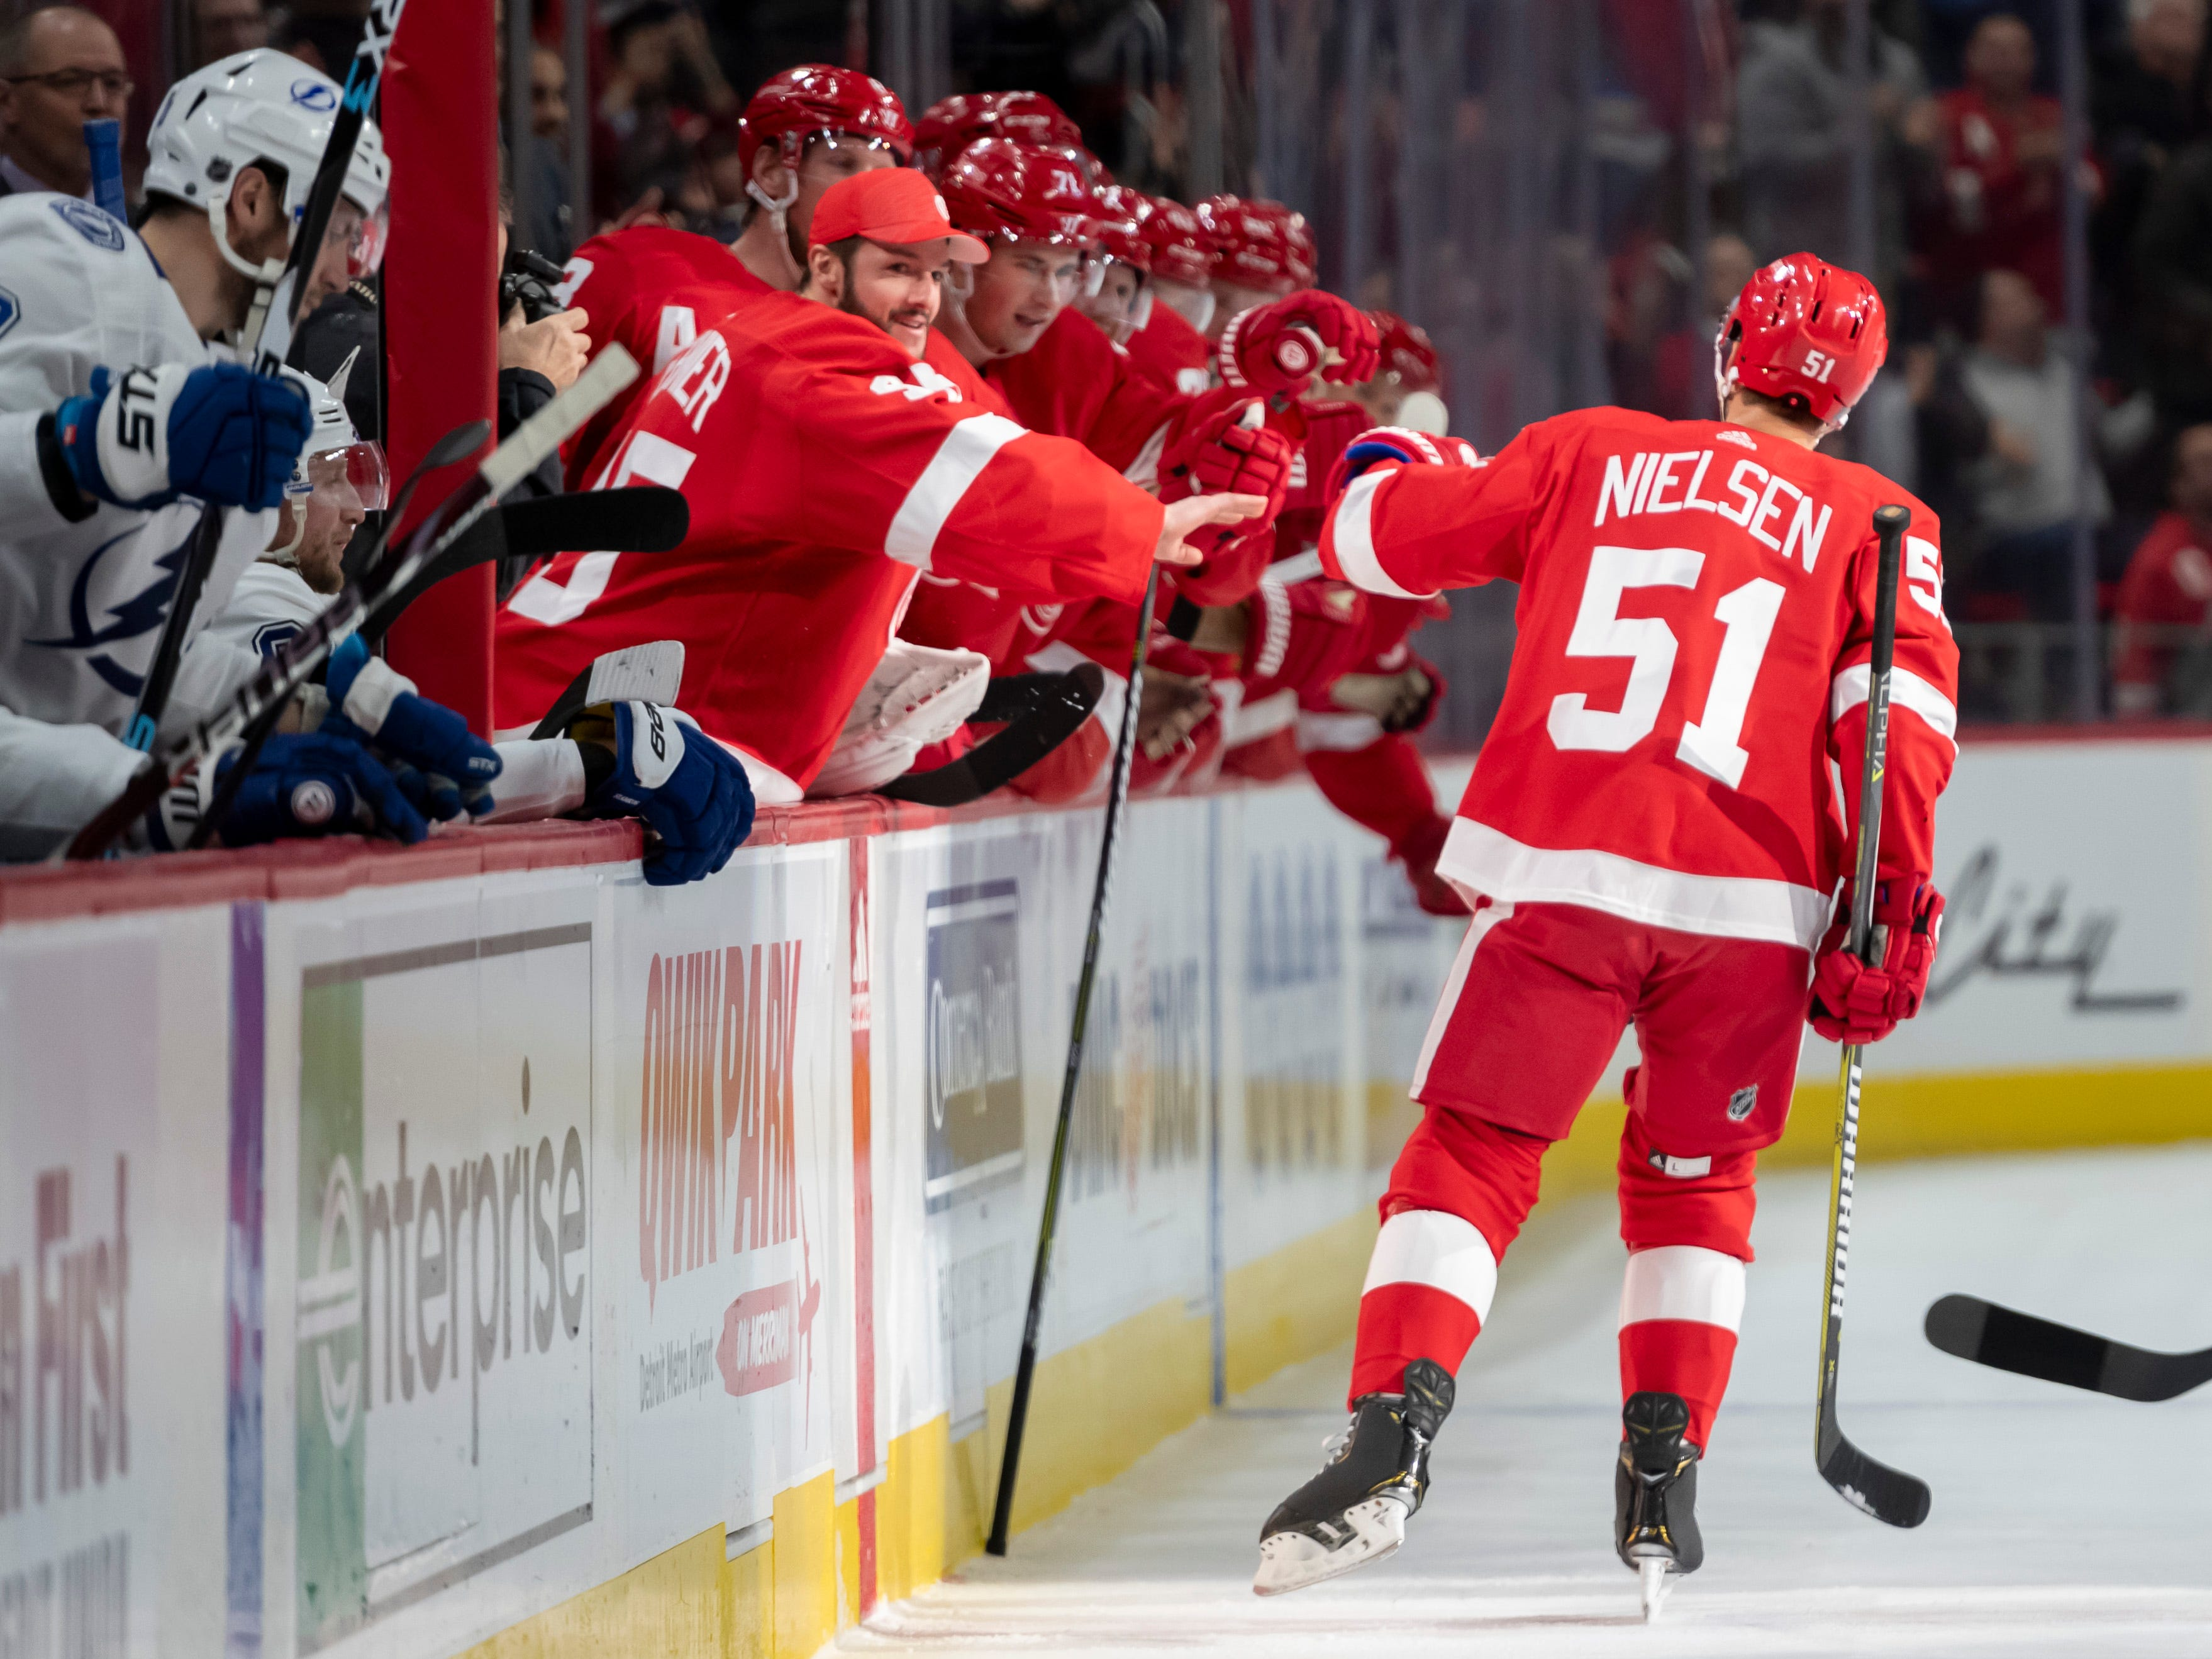 Detroit center Frans Nielsen gets high fives from his teammates after scoring in the first period.